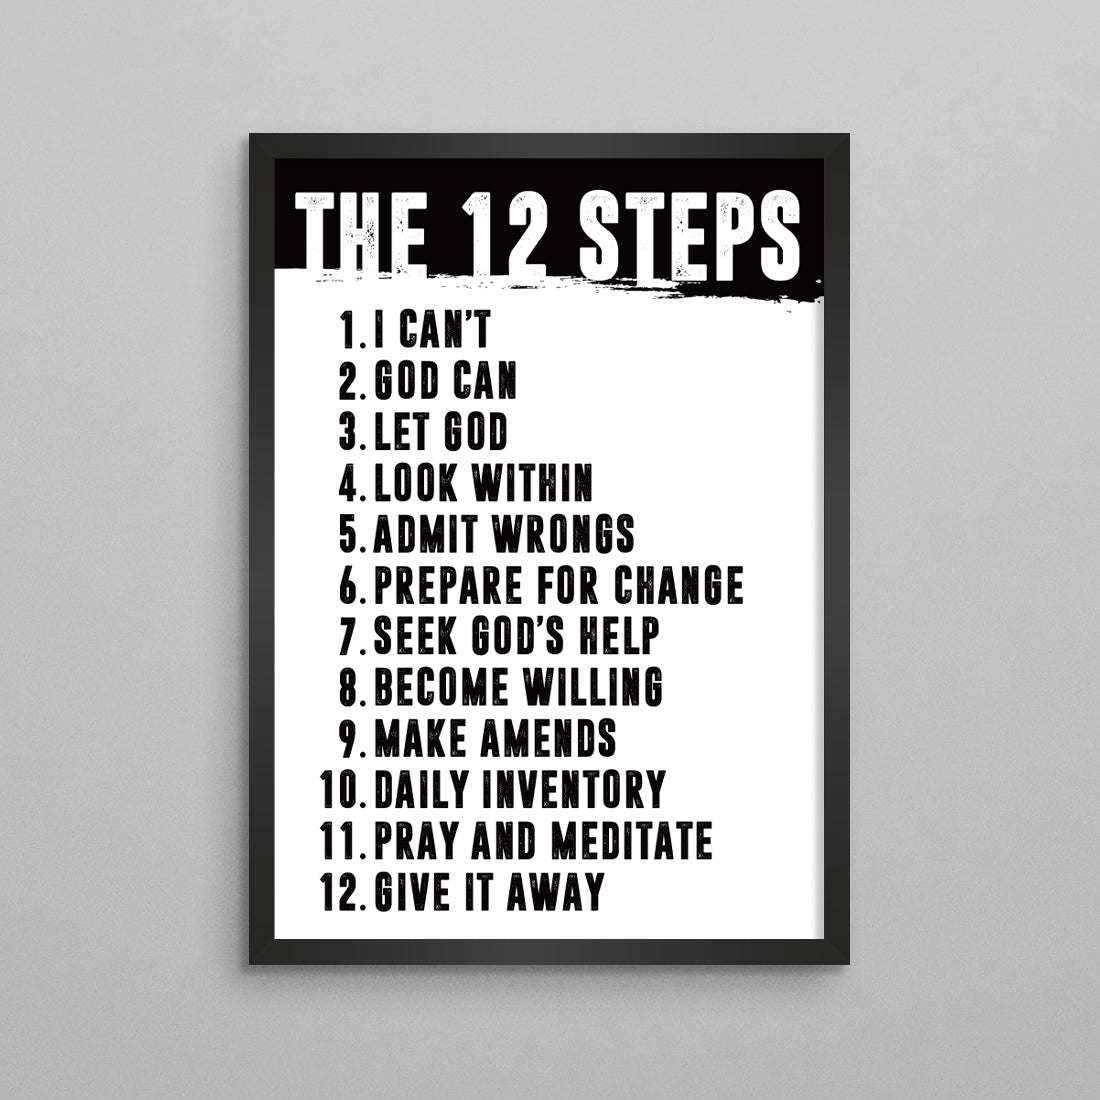 The 12 Steps Minimal Poster - 2 Styles